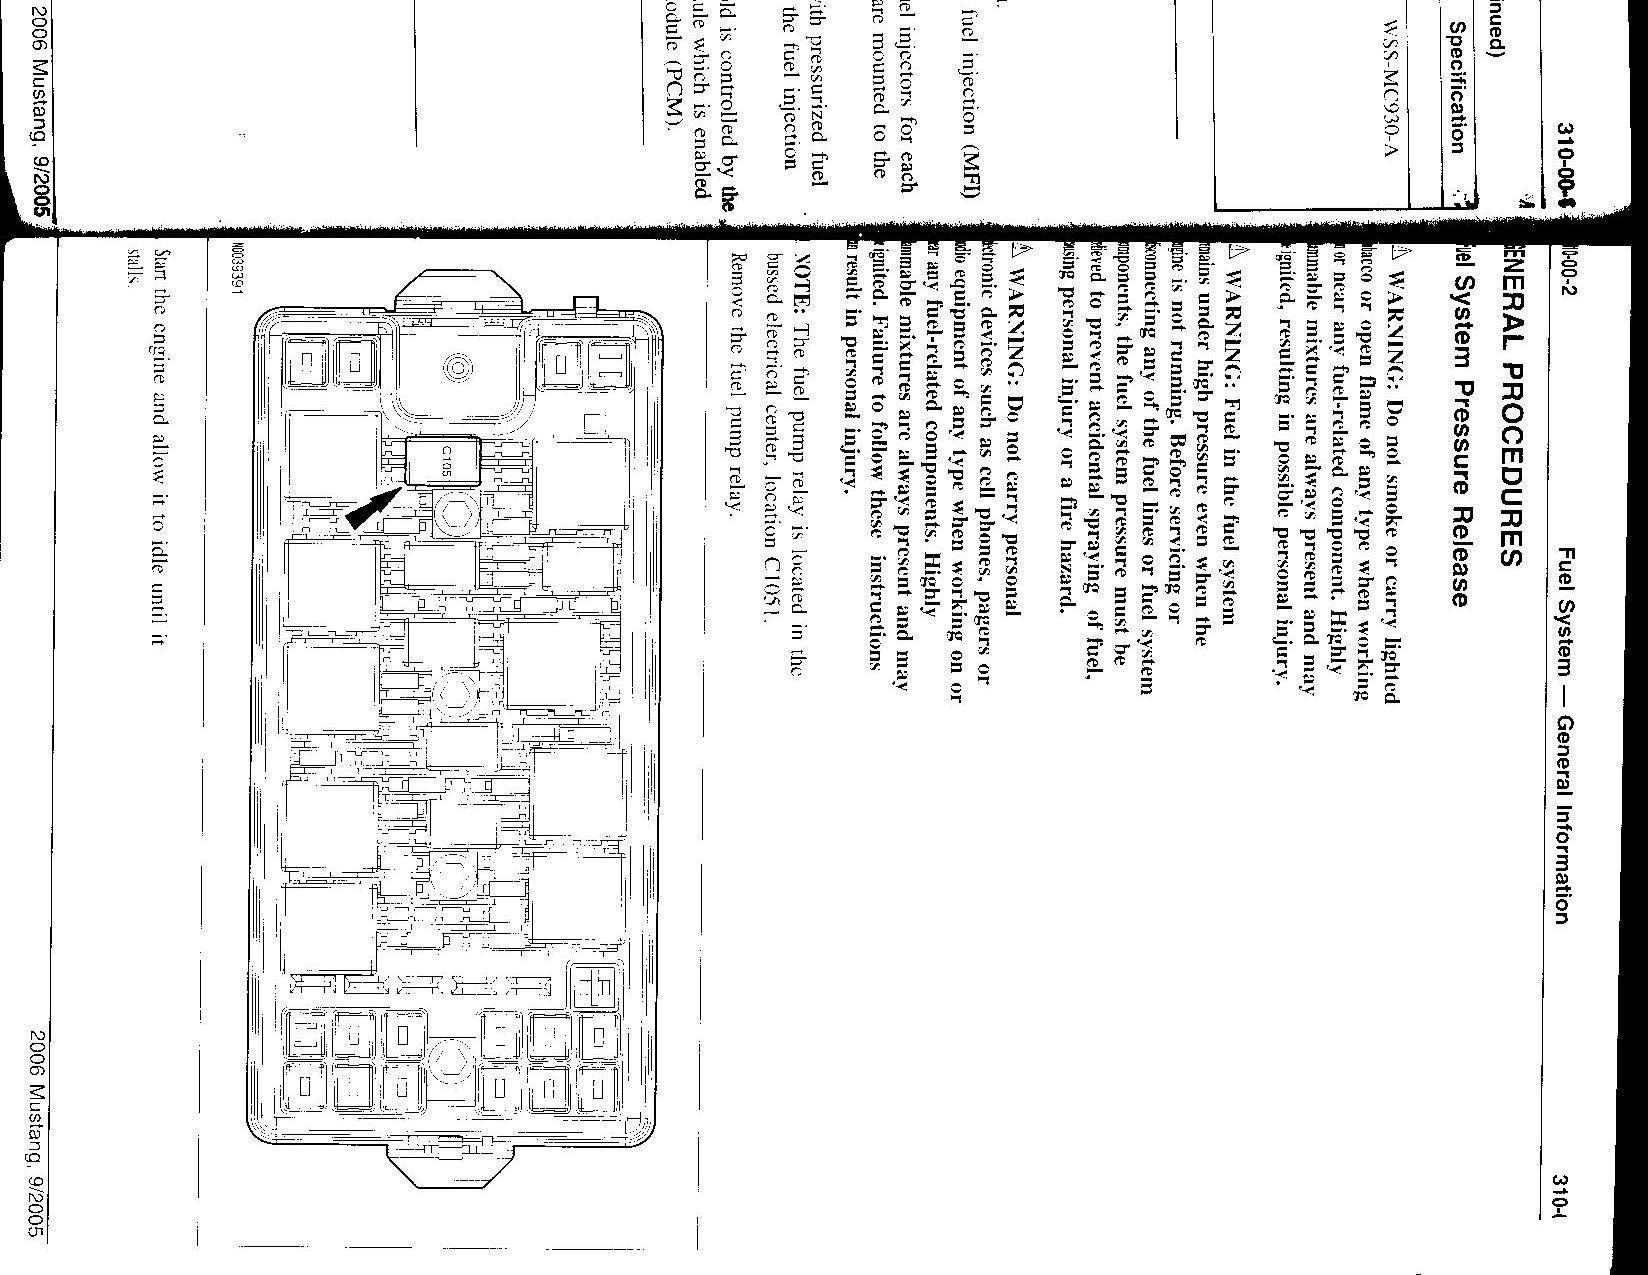 hight resolution of 2006 mustang fuse box wiring diagram2006 mustang fuse box